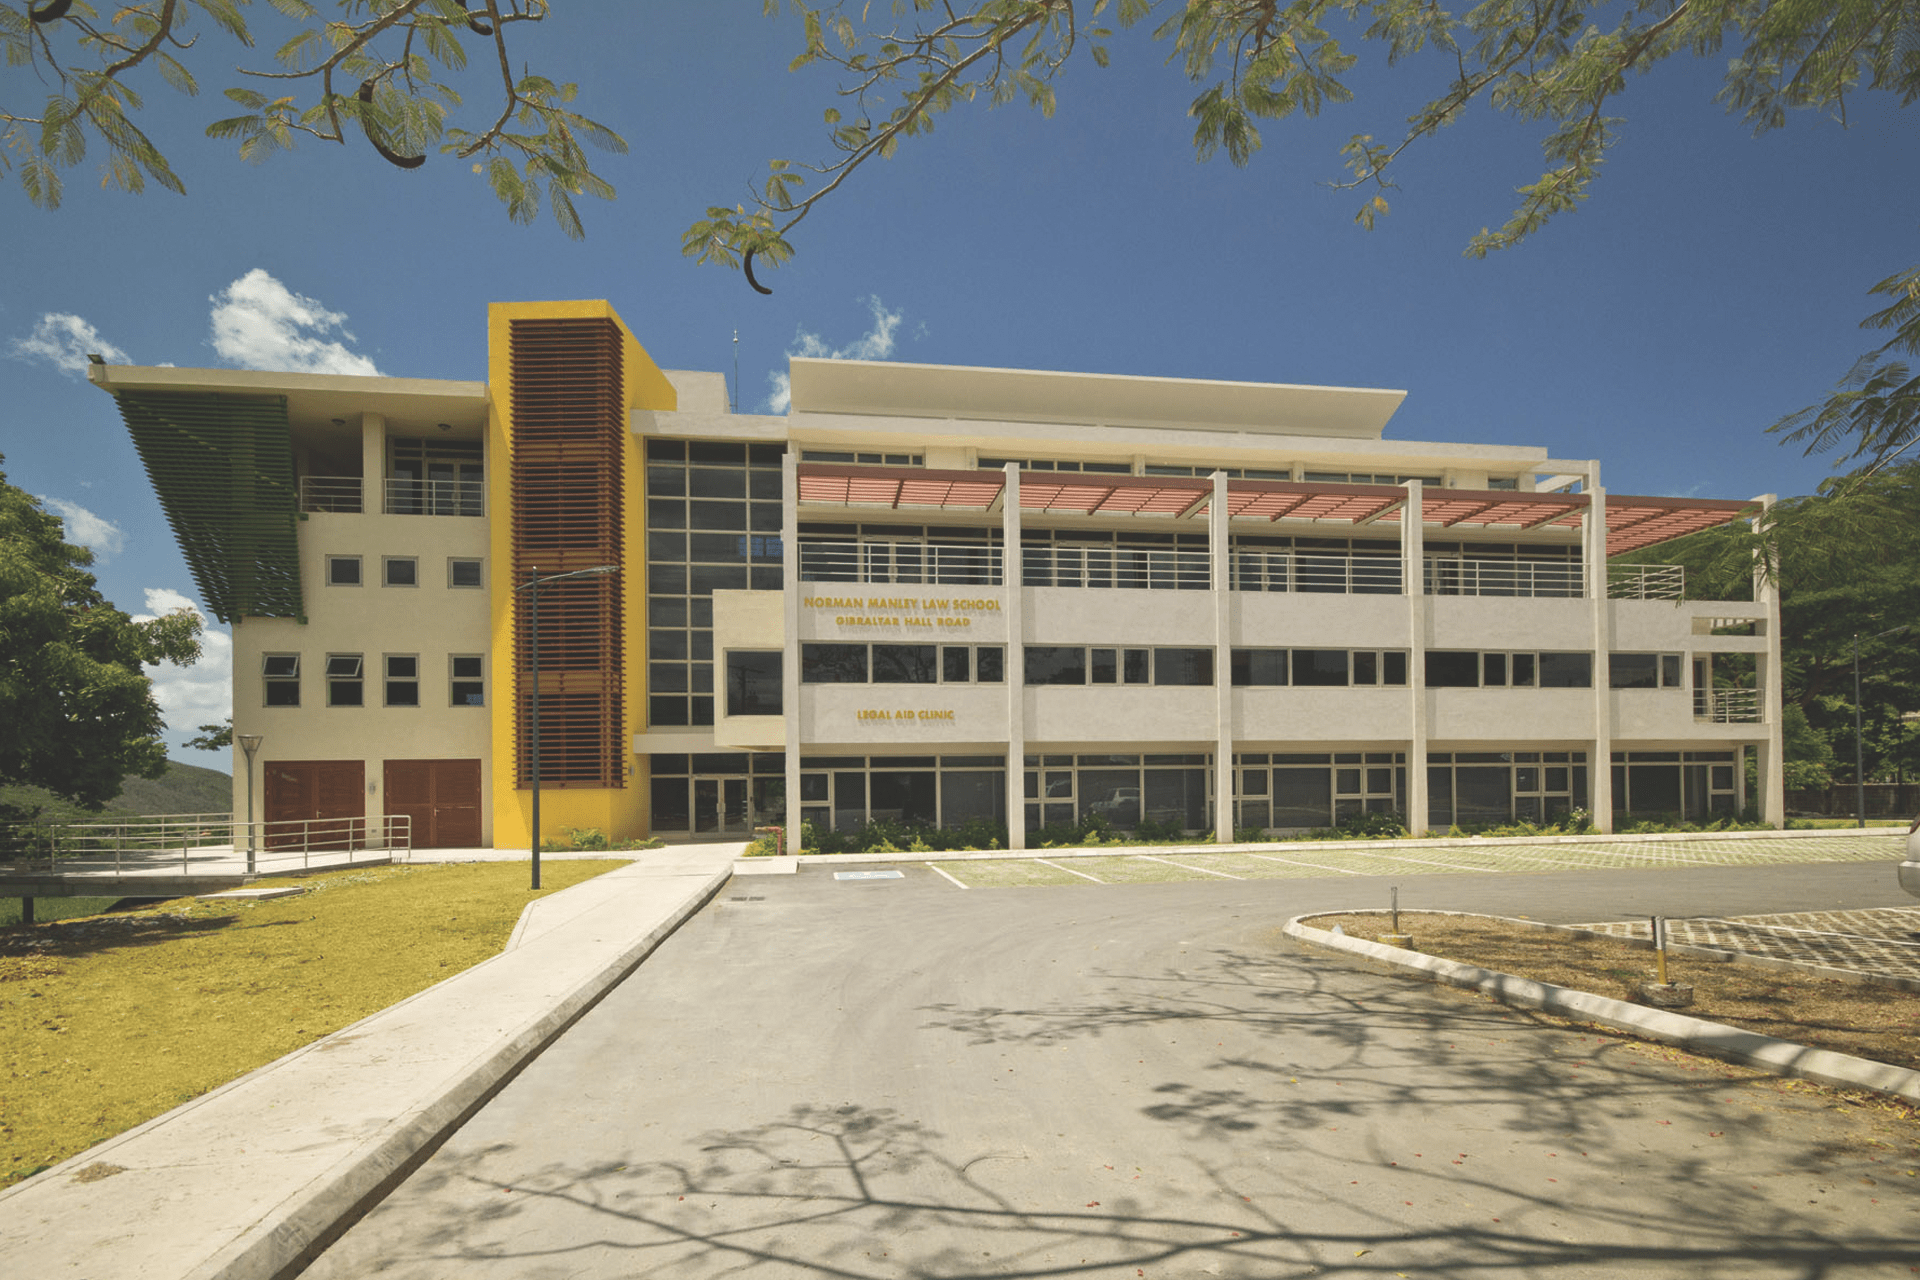 Norman Manley Law School